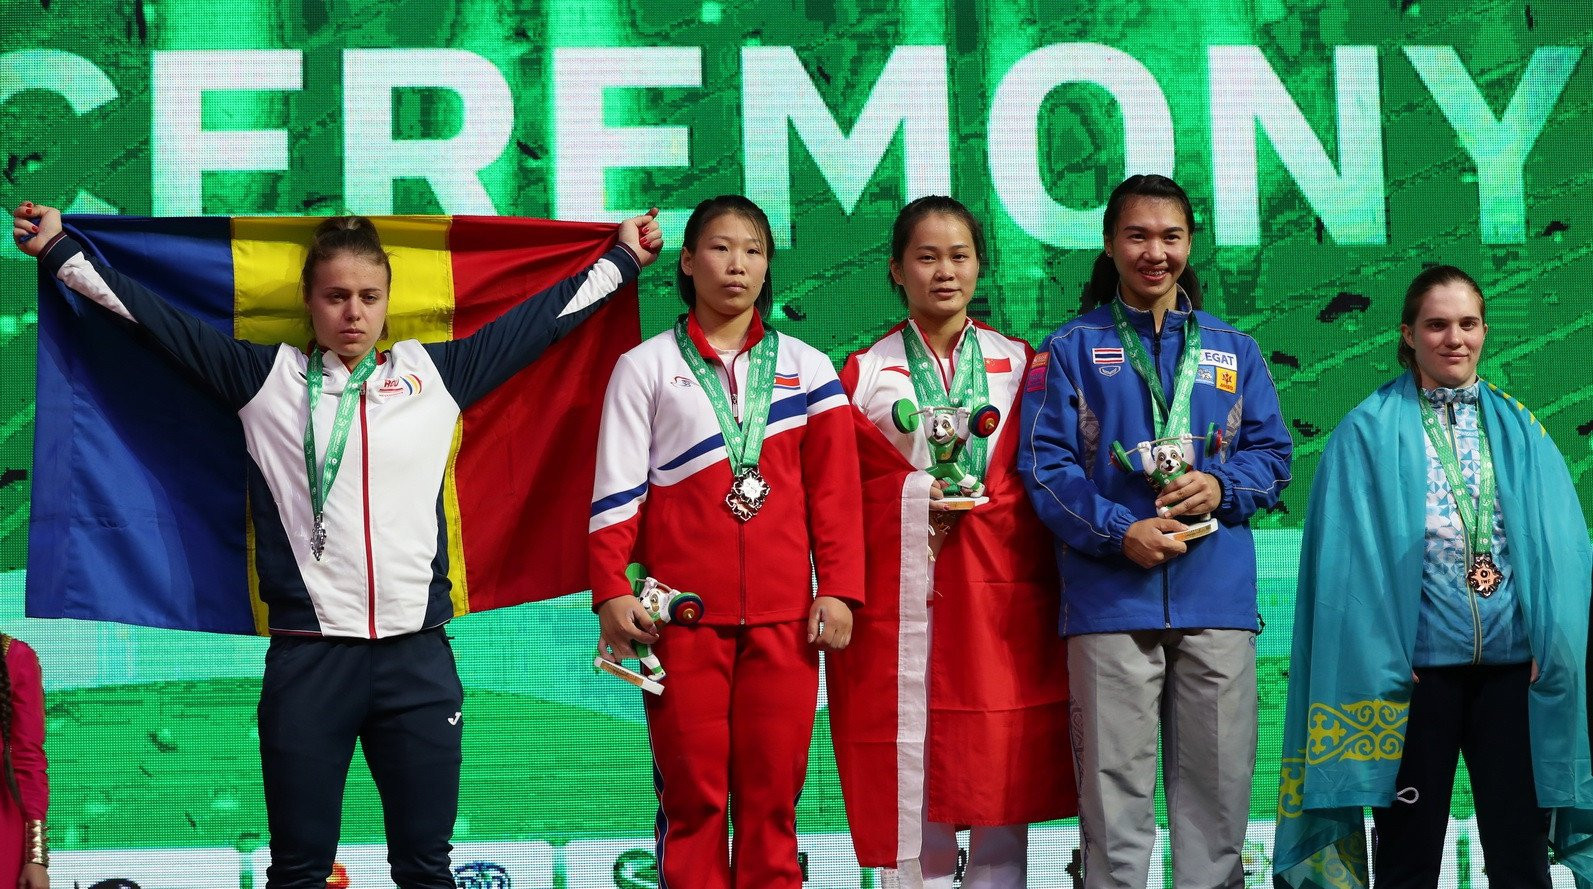 Rattanawan Wamalu, second right, is among five of Thailand's six medallists from last year's IWF World Championships in Ashgabat to have subsequently tested positive for banned performance-enhancing drugs ©IWF